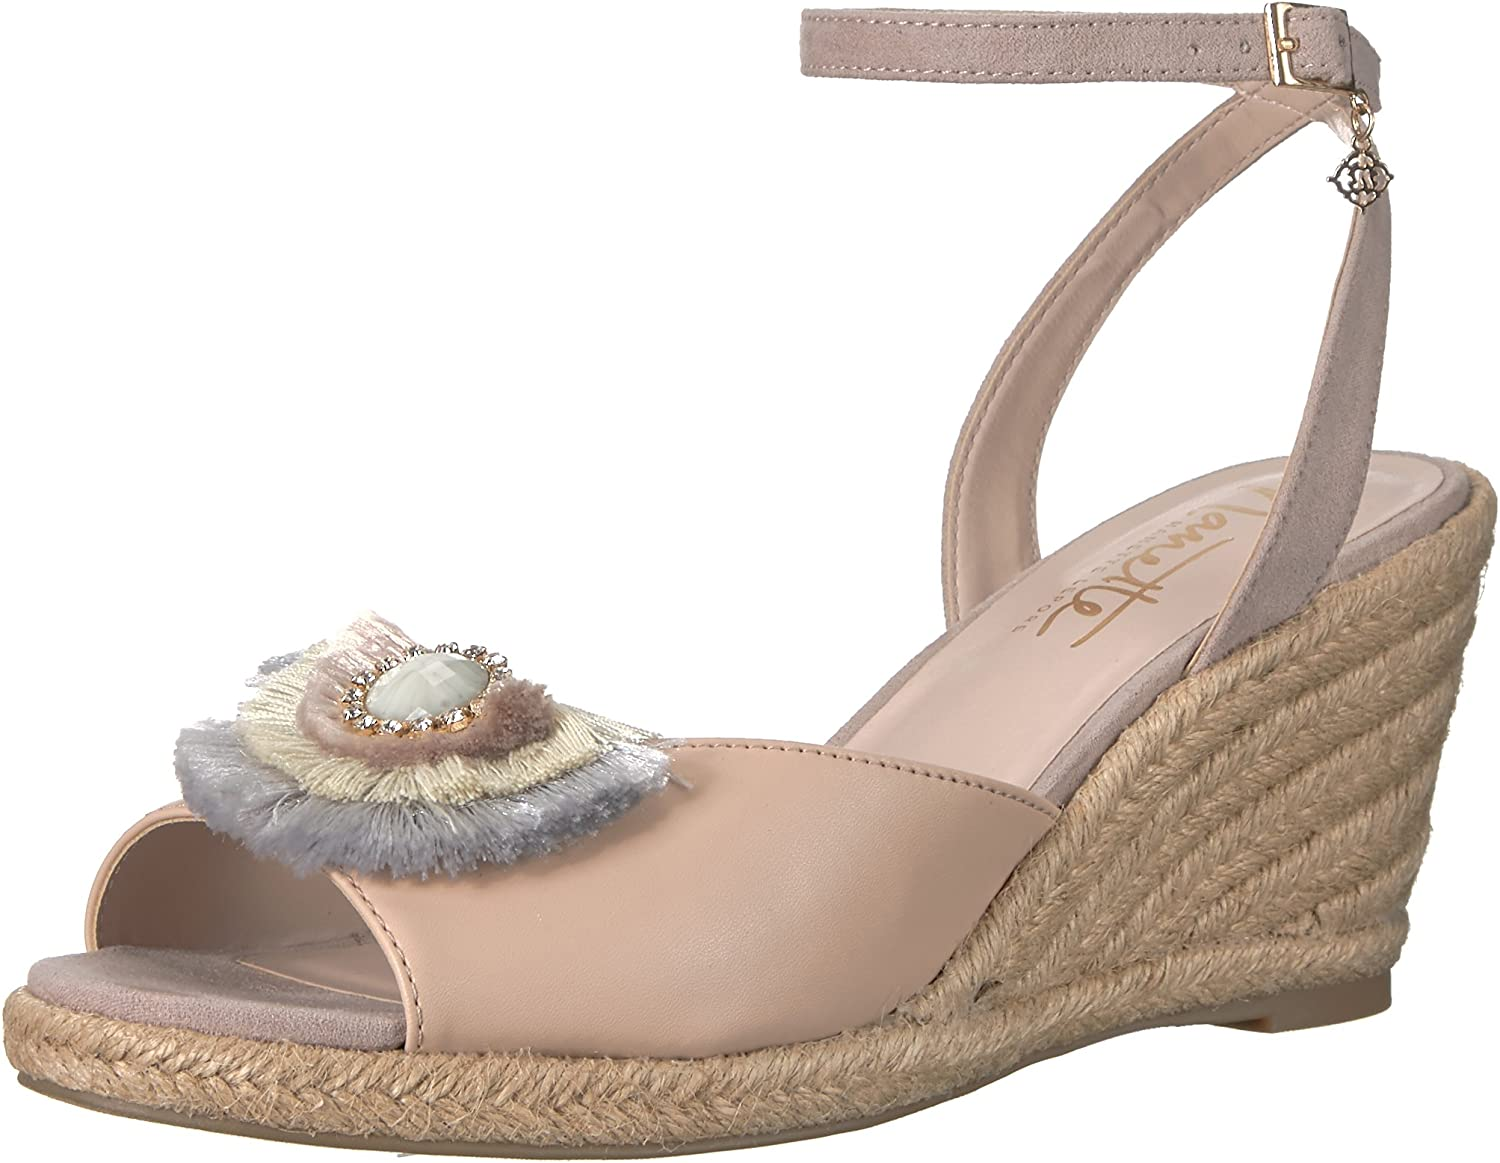 Nanette Lepore Womens Queen Wedge Sandal